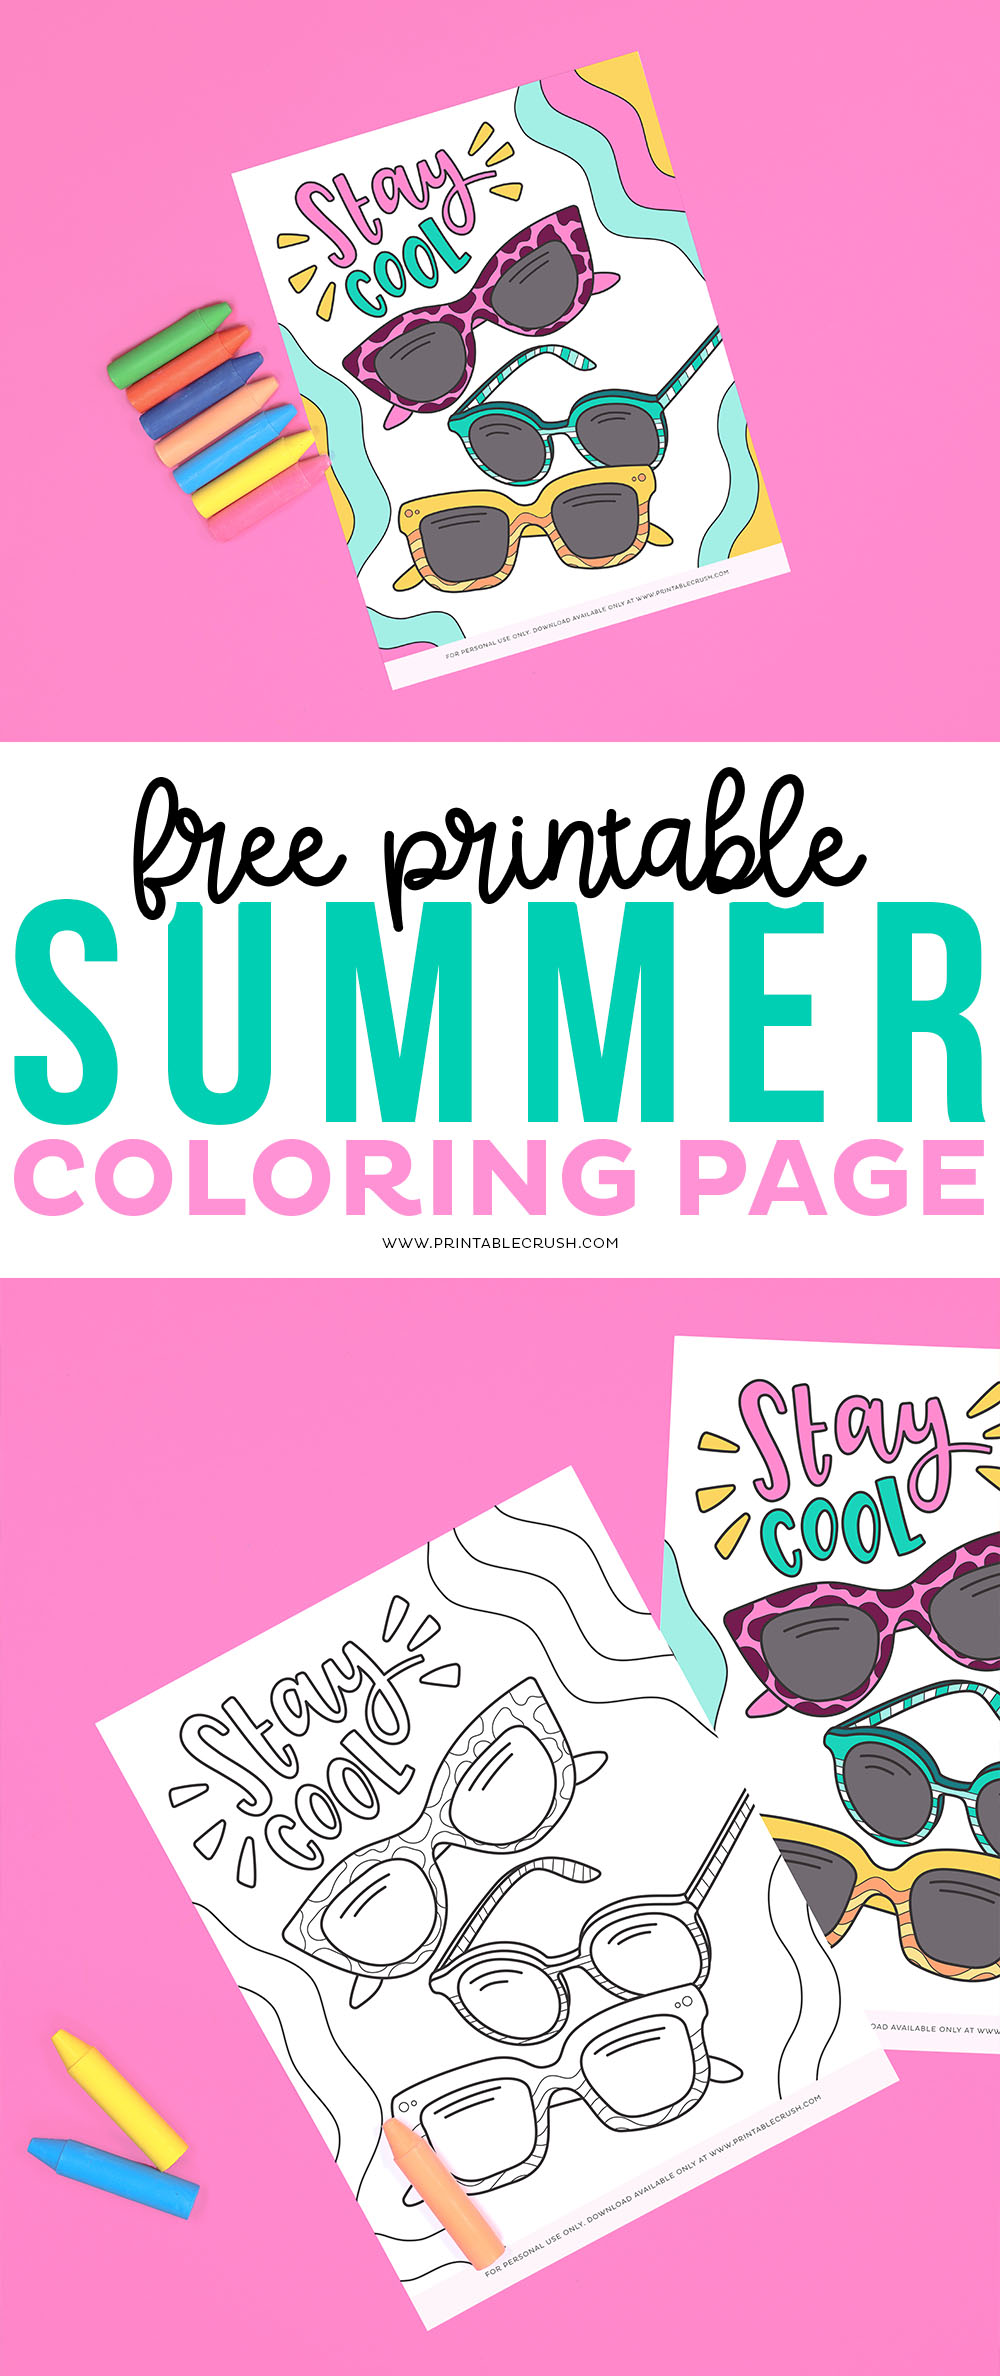 Free Sunglasses Coloring Page - Summer Coloring Page - Coloring Page for Summer - Printable Crush via @printablecrush